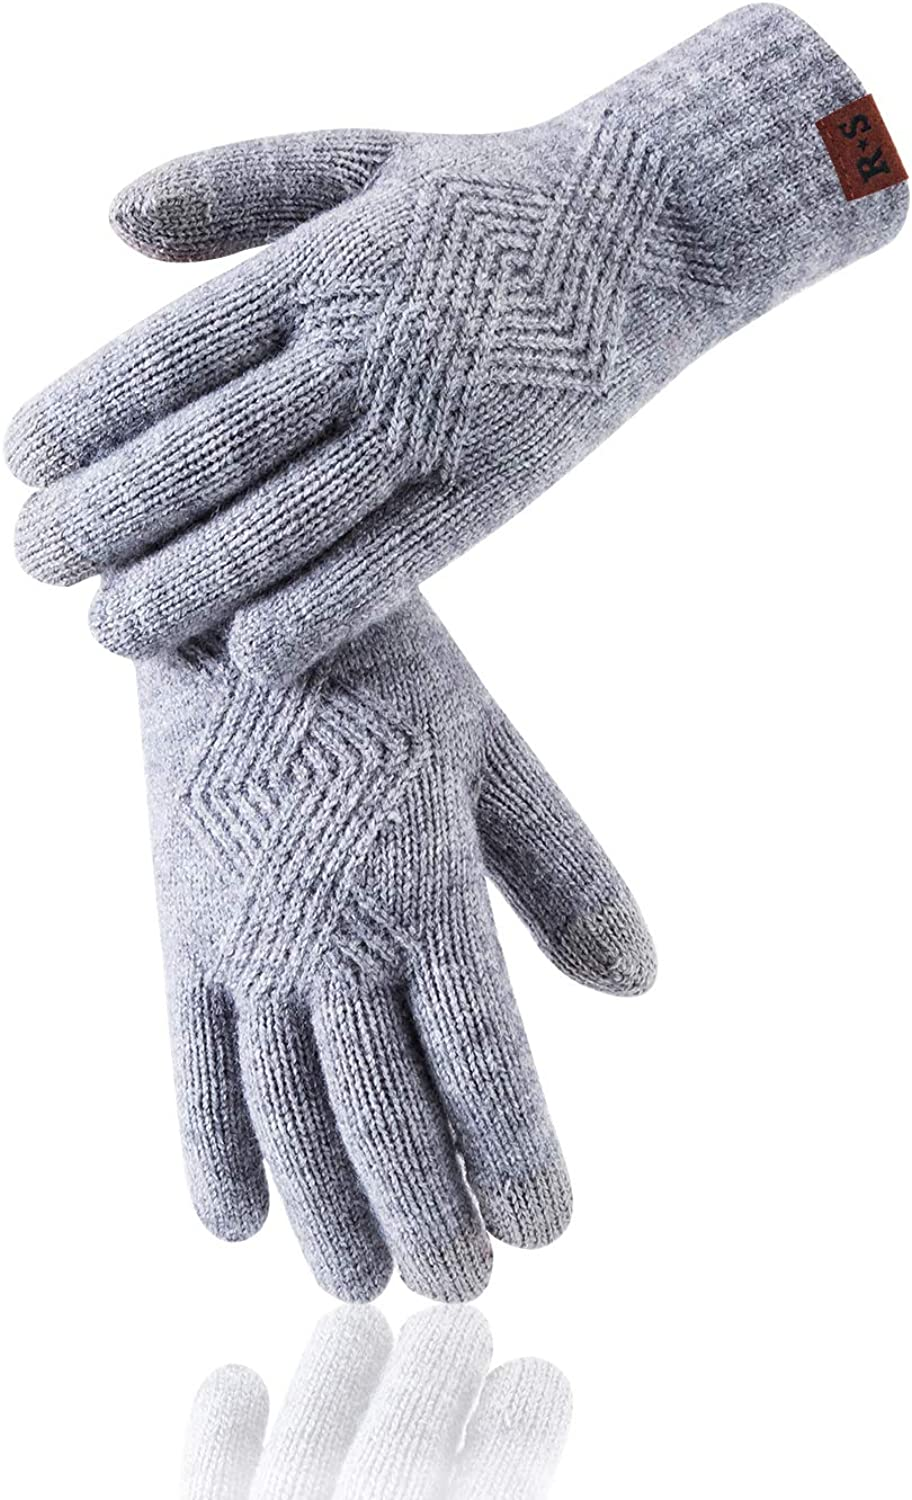 Reach Star Winter Women Touchscreen Gloves Cable Knit Warm Lined 3 Fingers Touch Screen Texting Mitten Gloves for Walking